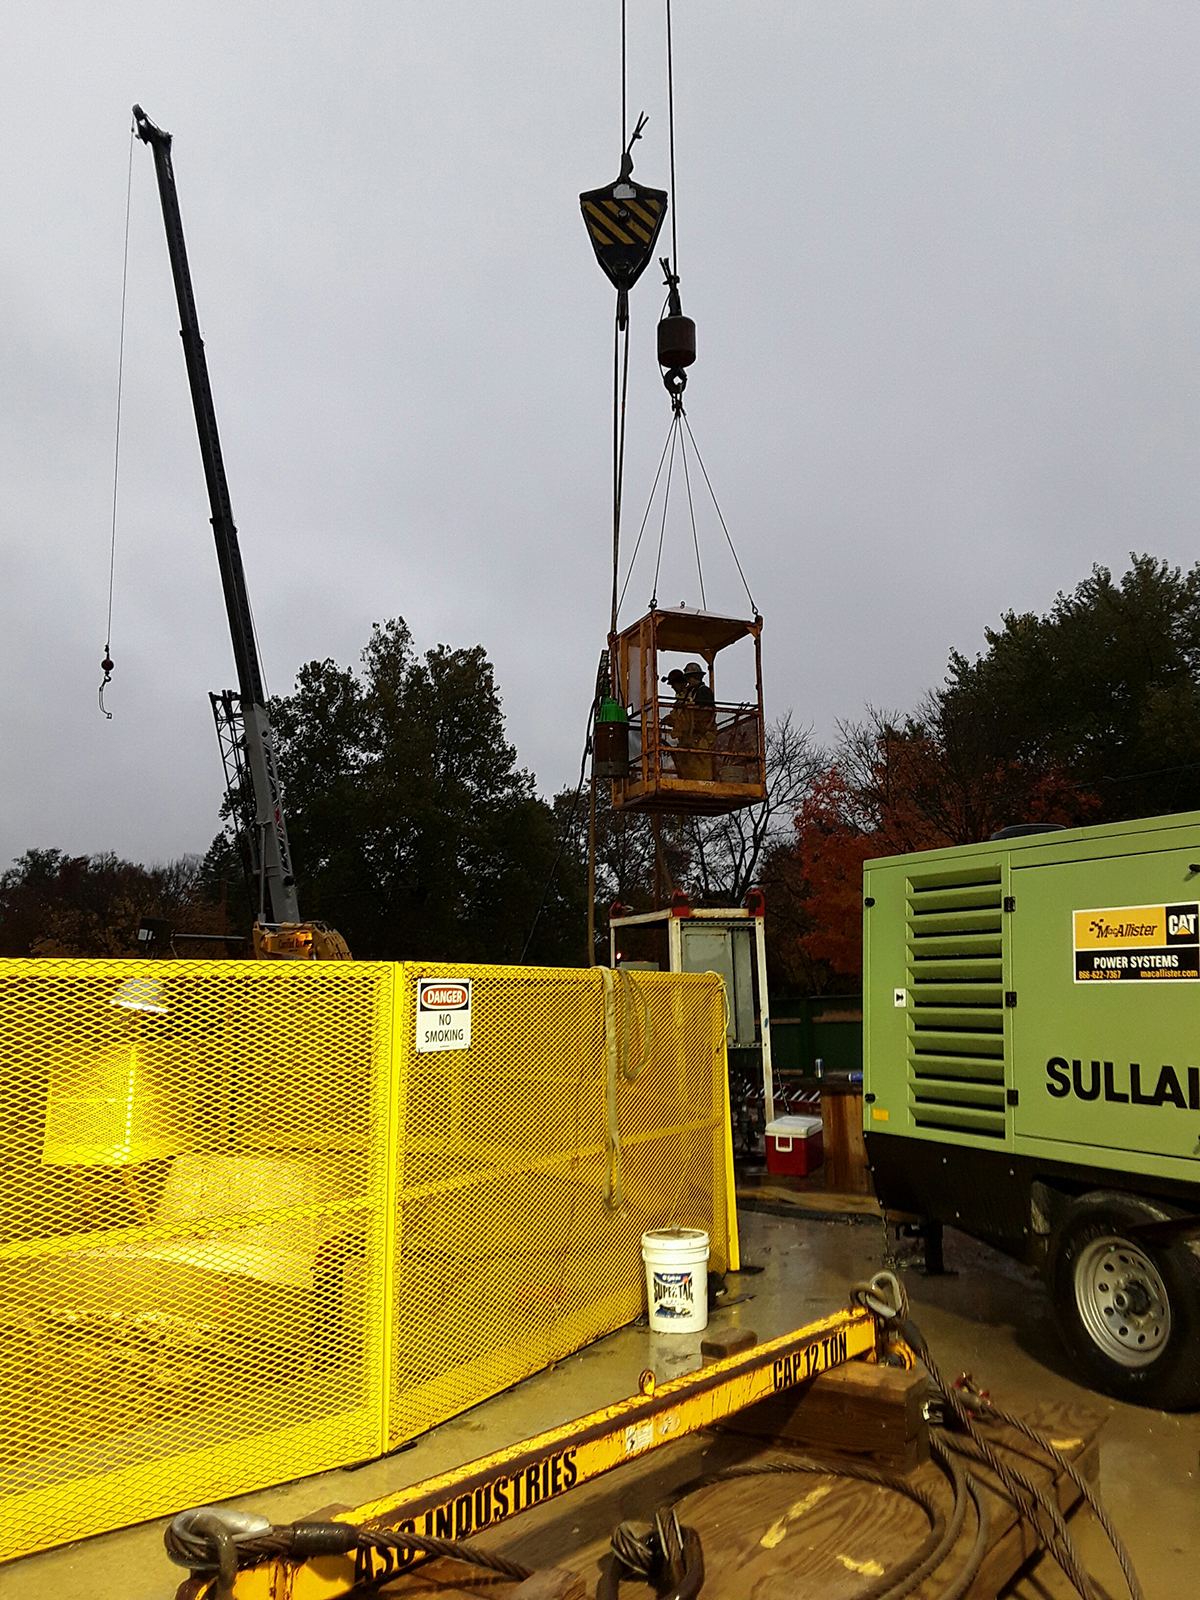 2019 10 31 RS Stiffler and Tuwah being lowered into the shaft to install a larger pump at 833